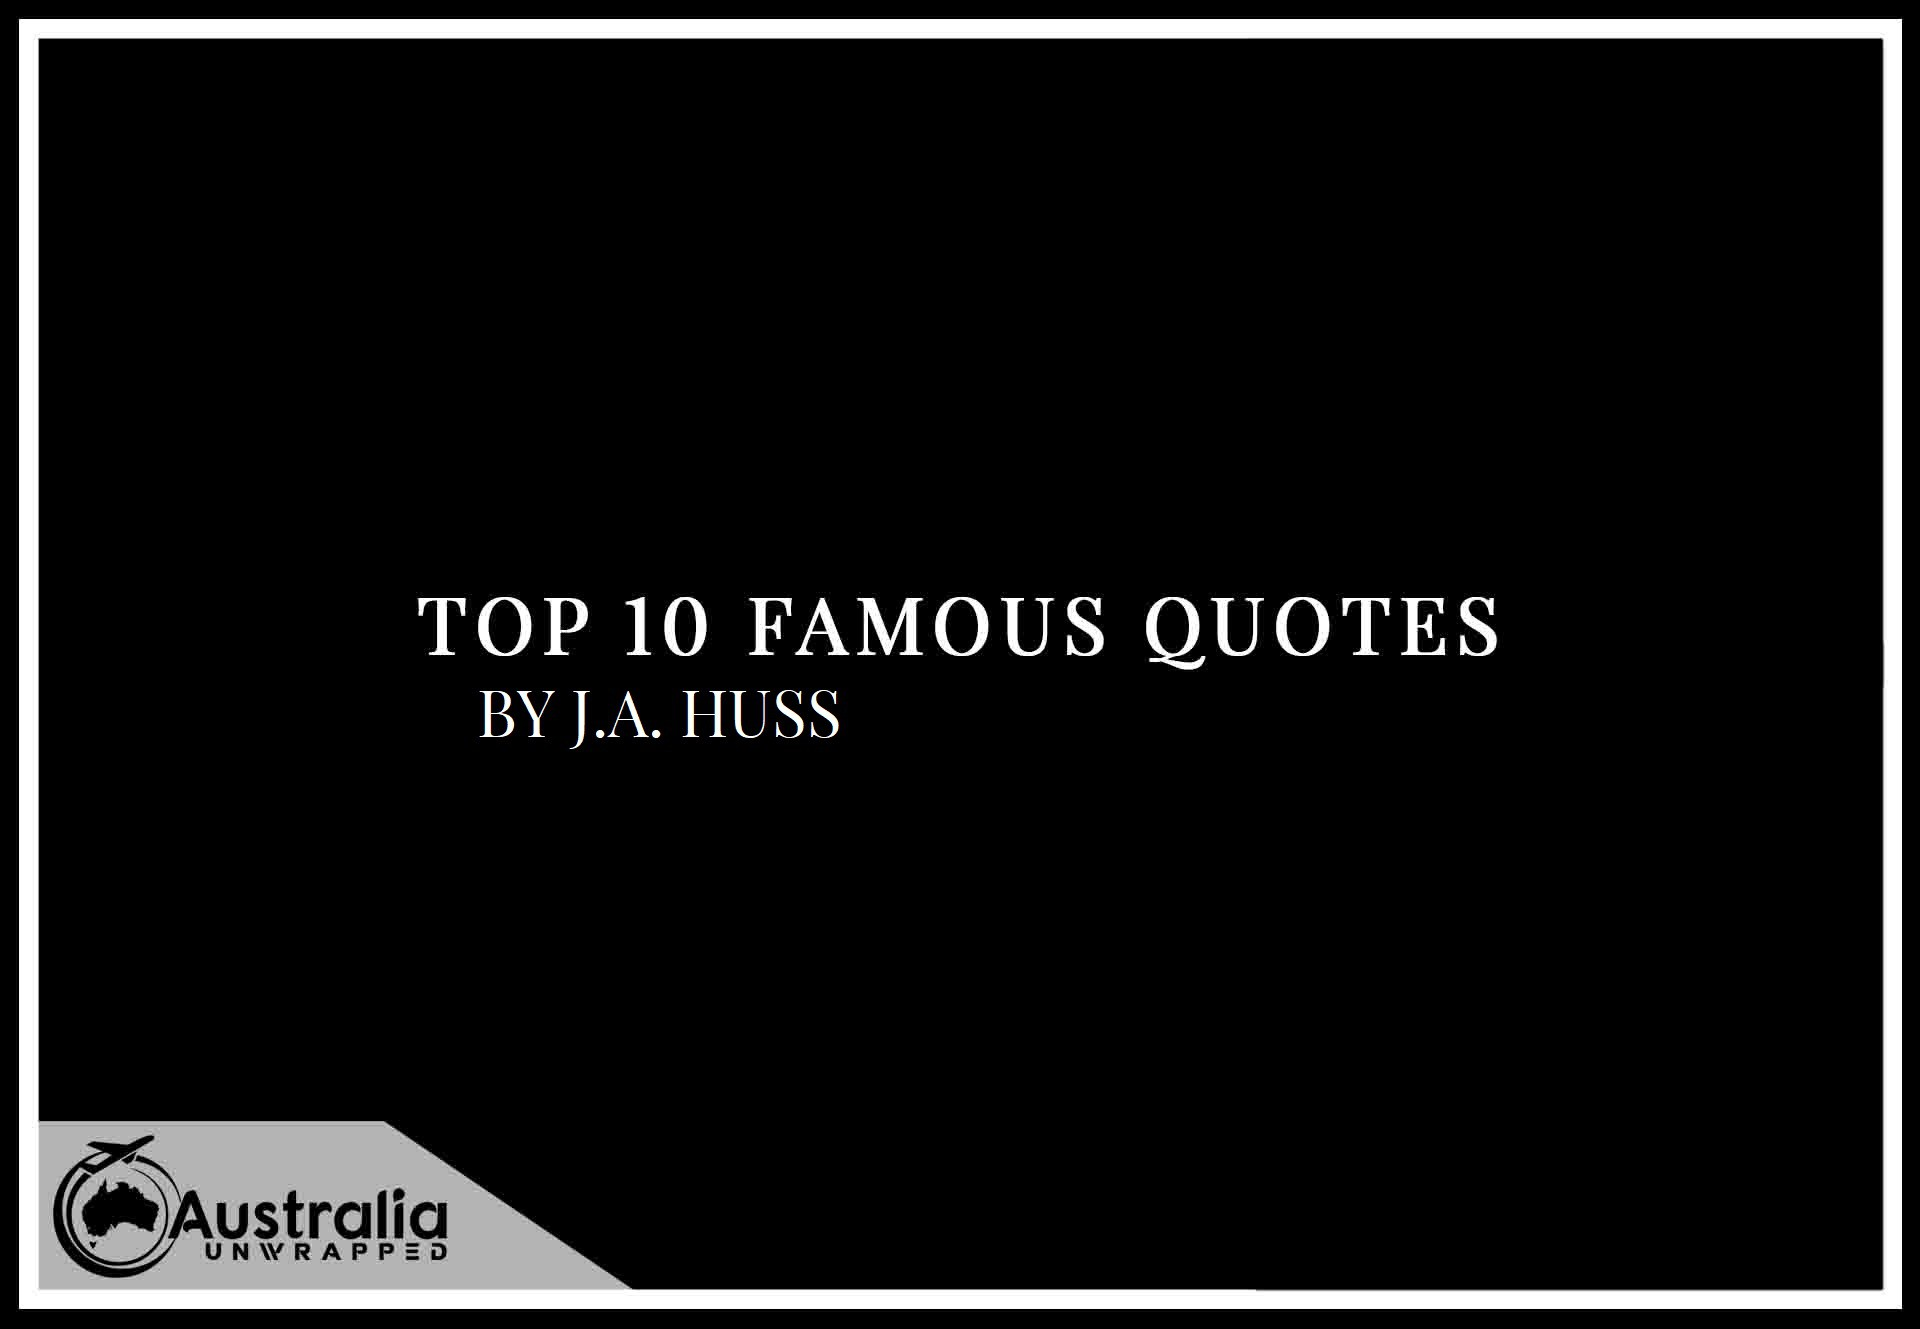 Top 10 Famous Quotes by Author J.A. Huss